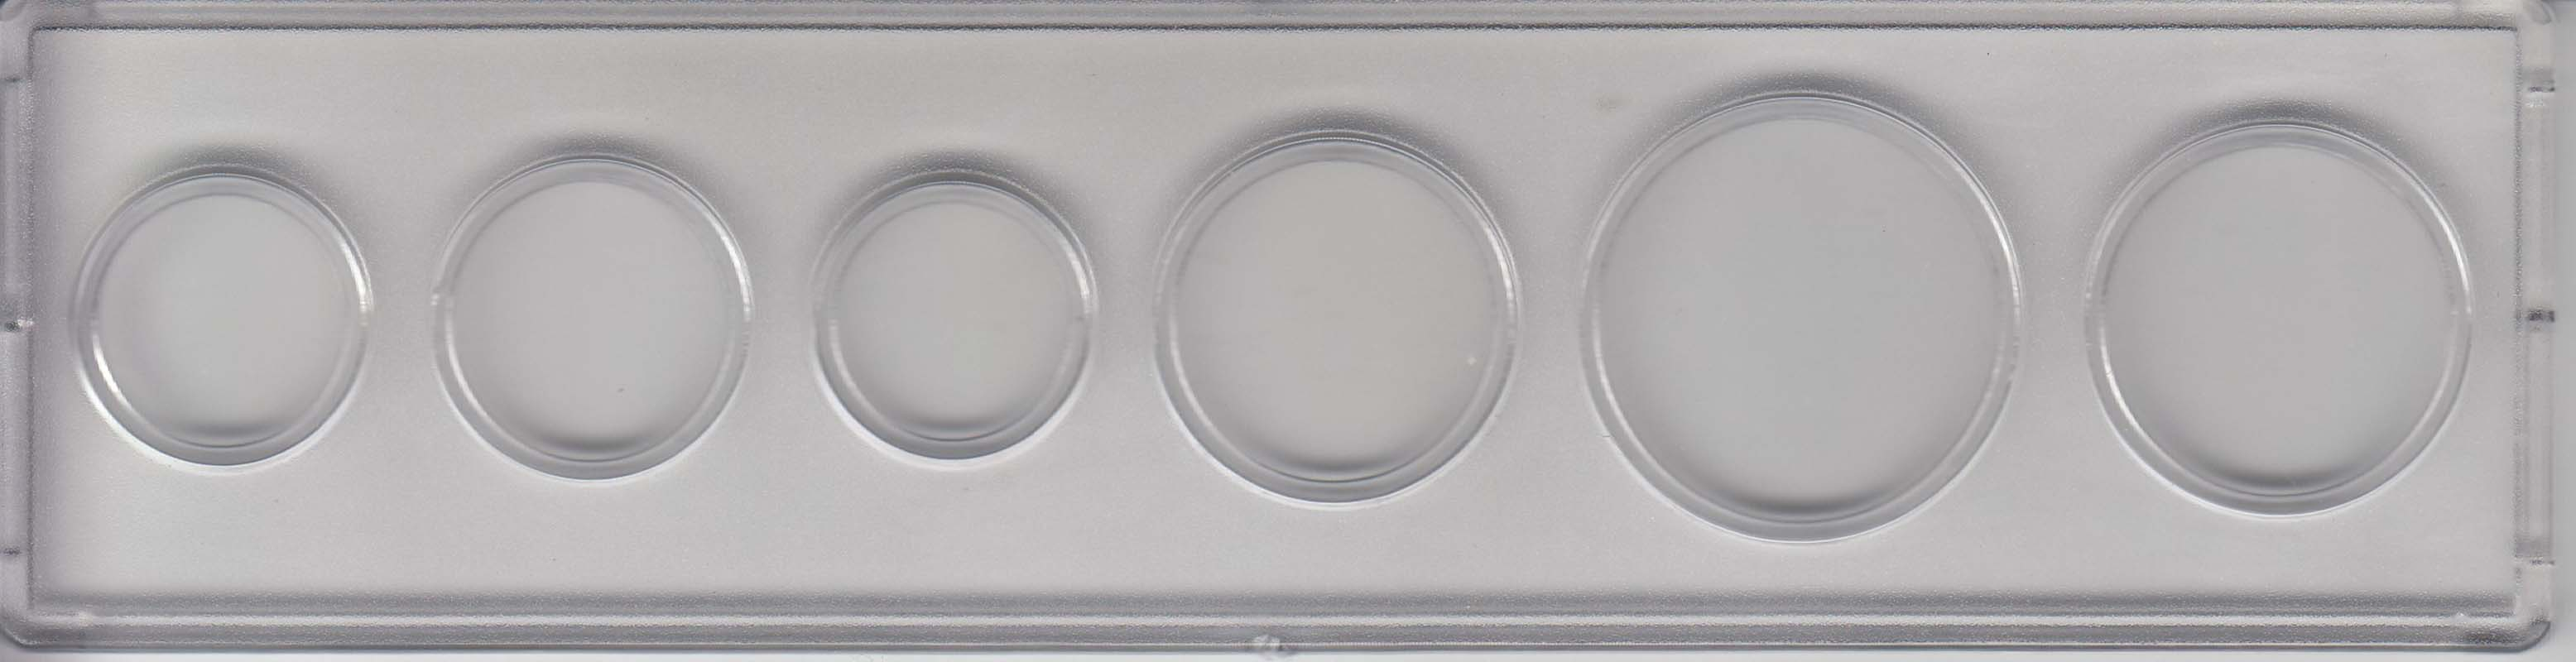 Snaplocks For HALF DOLLAR Coins 25 Clear Plastic Holders 2x2 Square Capsules NEW